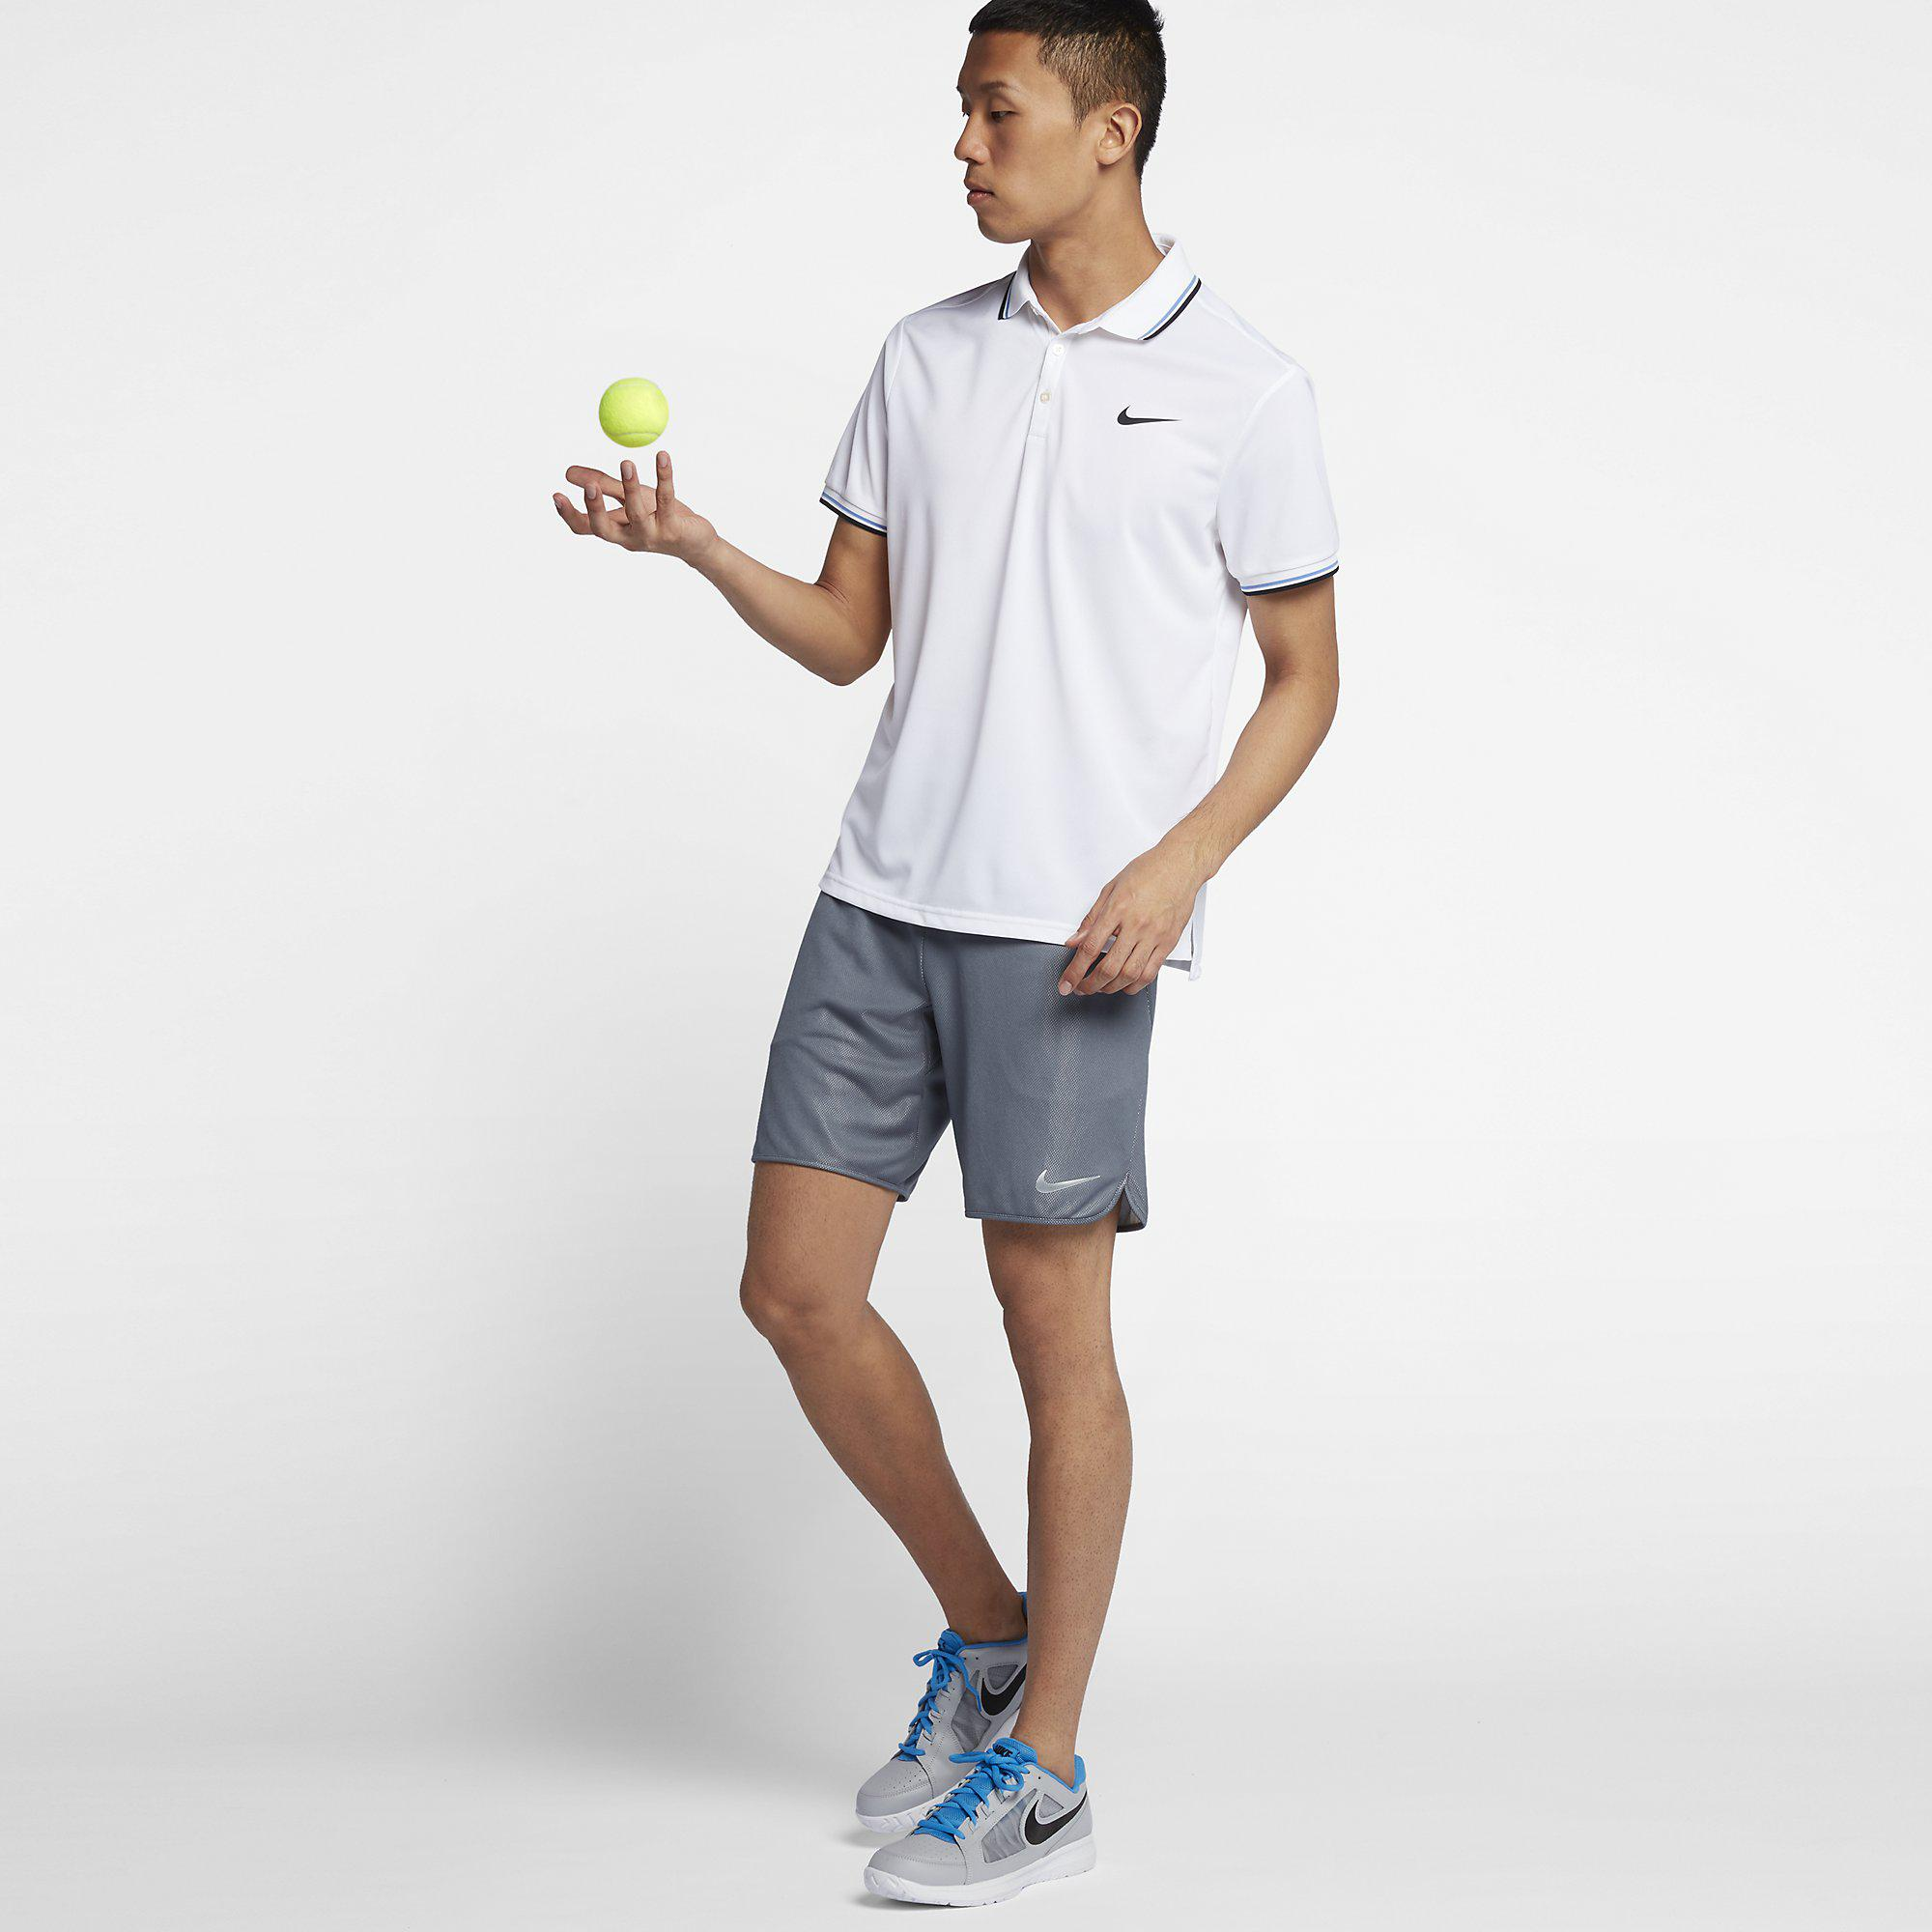 brave tennis outfits for men 17